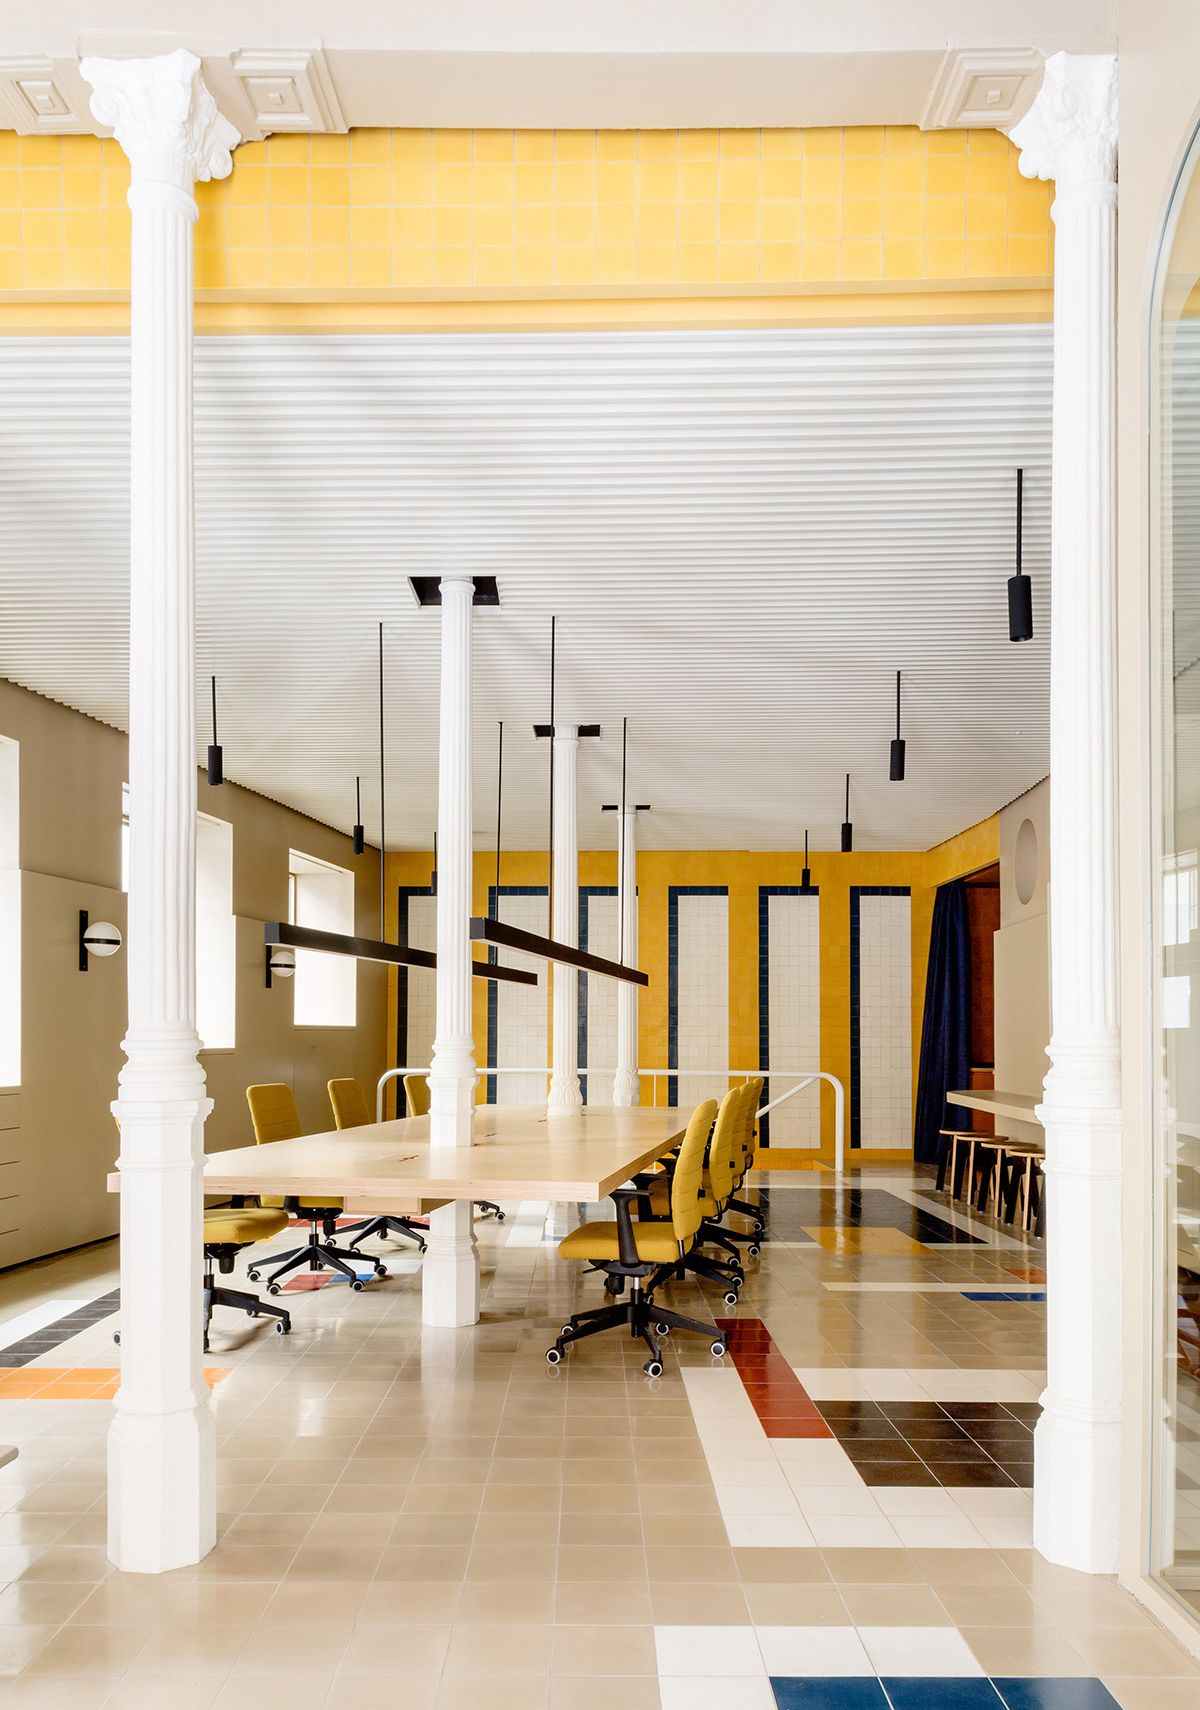 Mustard Curtains And Mondrian Inspired Tiles Are Totally Making This Madrid Ad Office Sight Unseen Interior Design School Boutique Interior Design Office Interiors